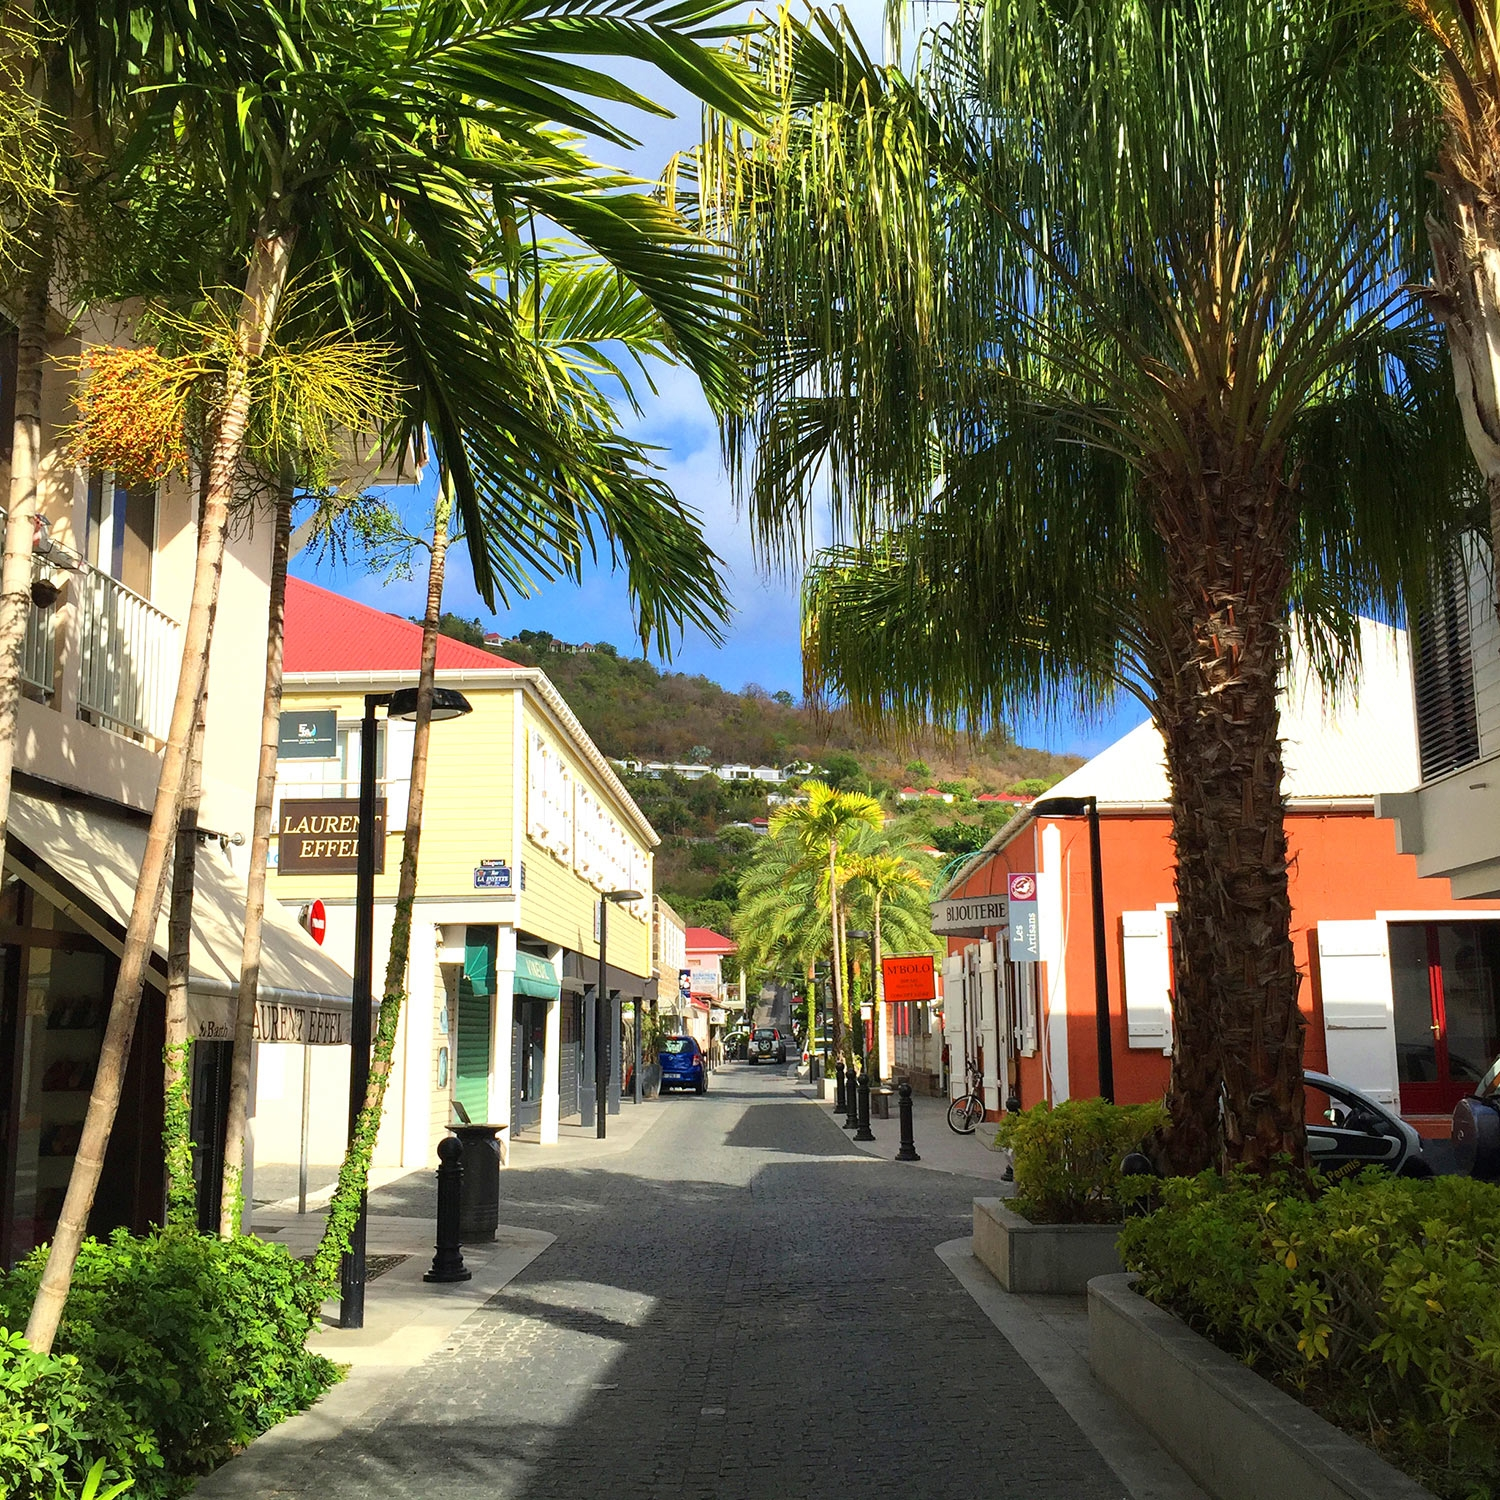 The colourful streets of St Barths are lined with bright green palms